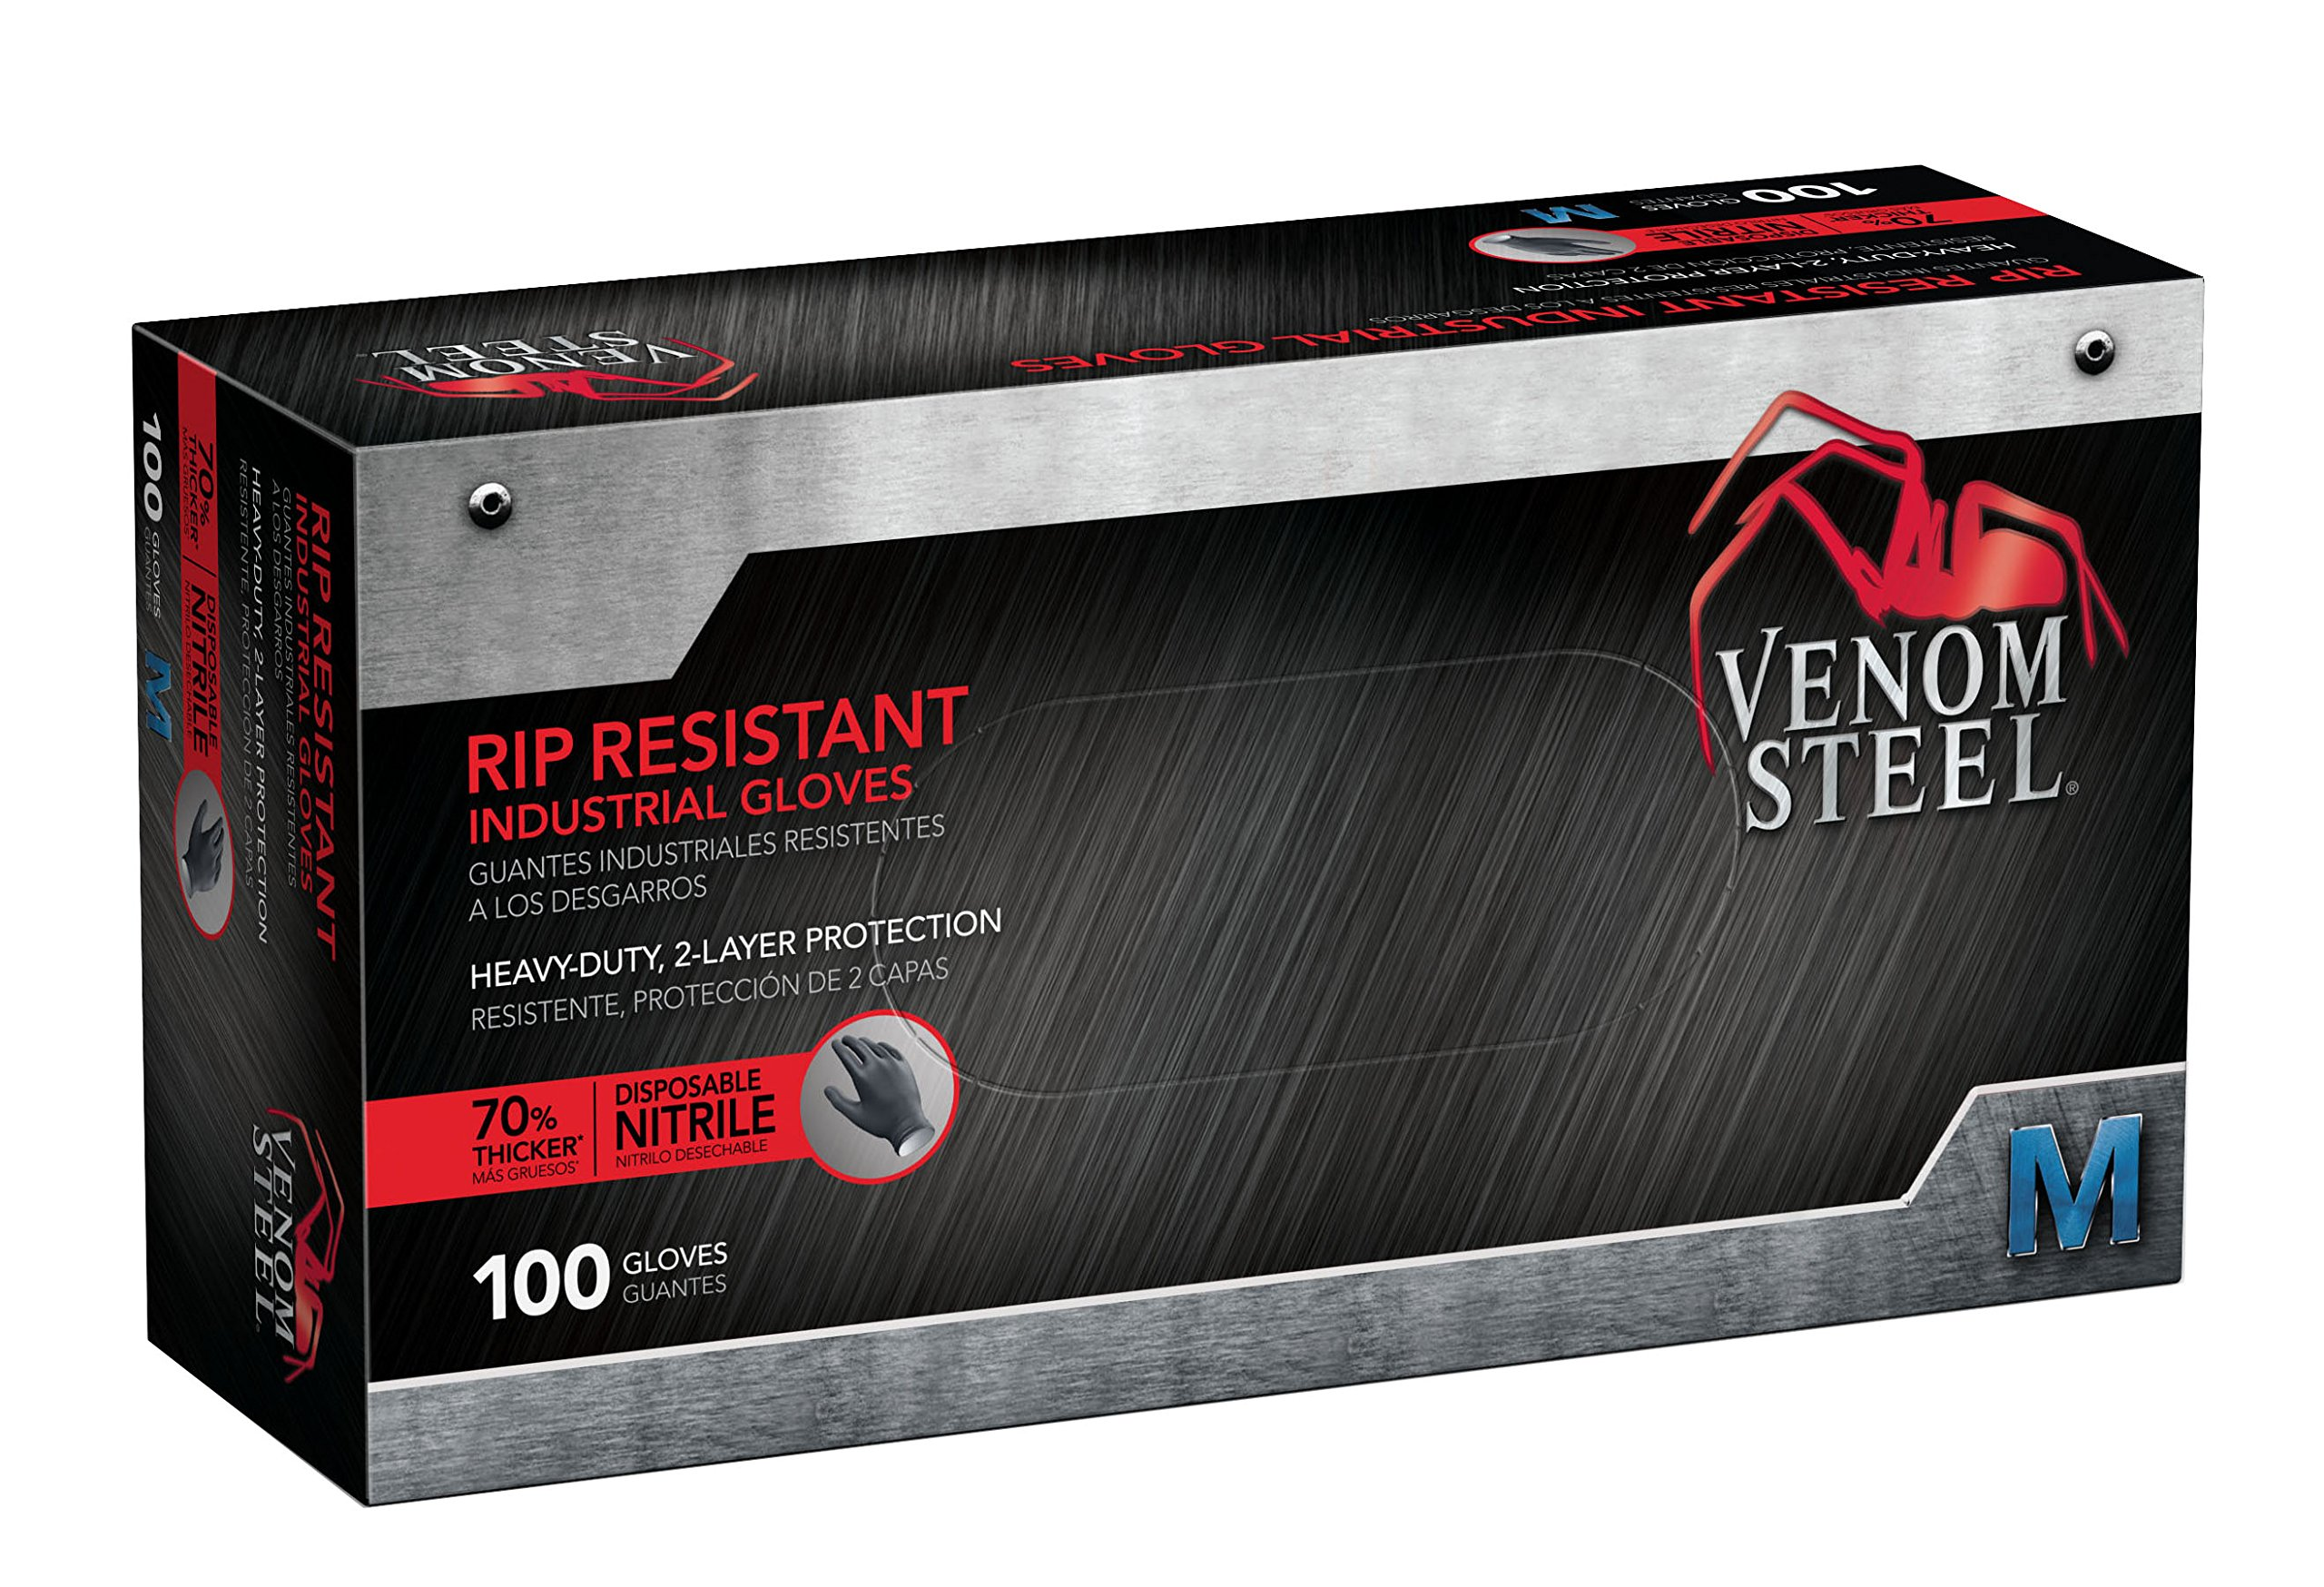 Venom Steel Rip Resistant Industrial Nitrile Gloves 2-Layer,Black White, Latex Rubber Free, Disposable, Medium (Pack of 100)